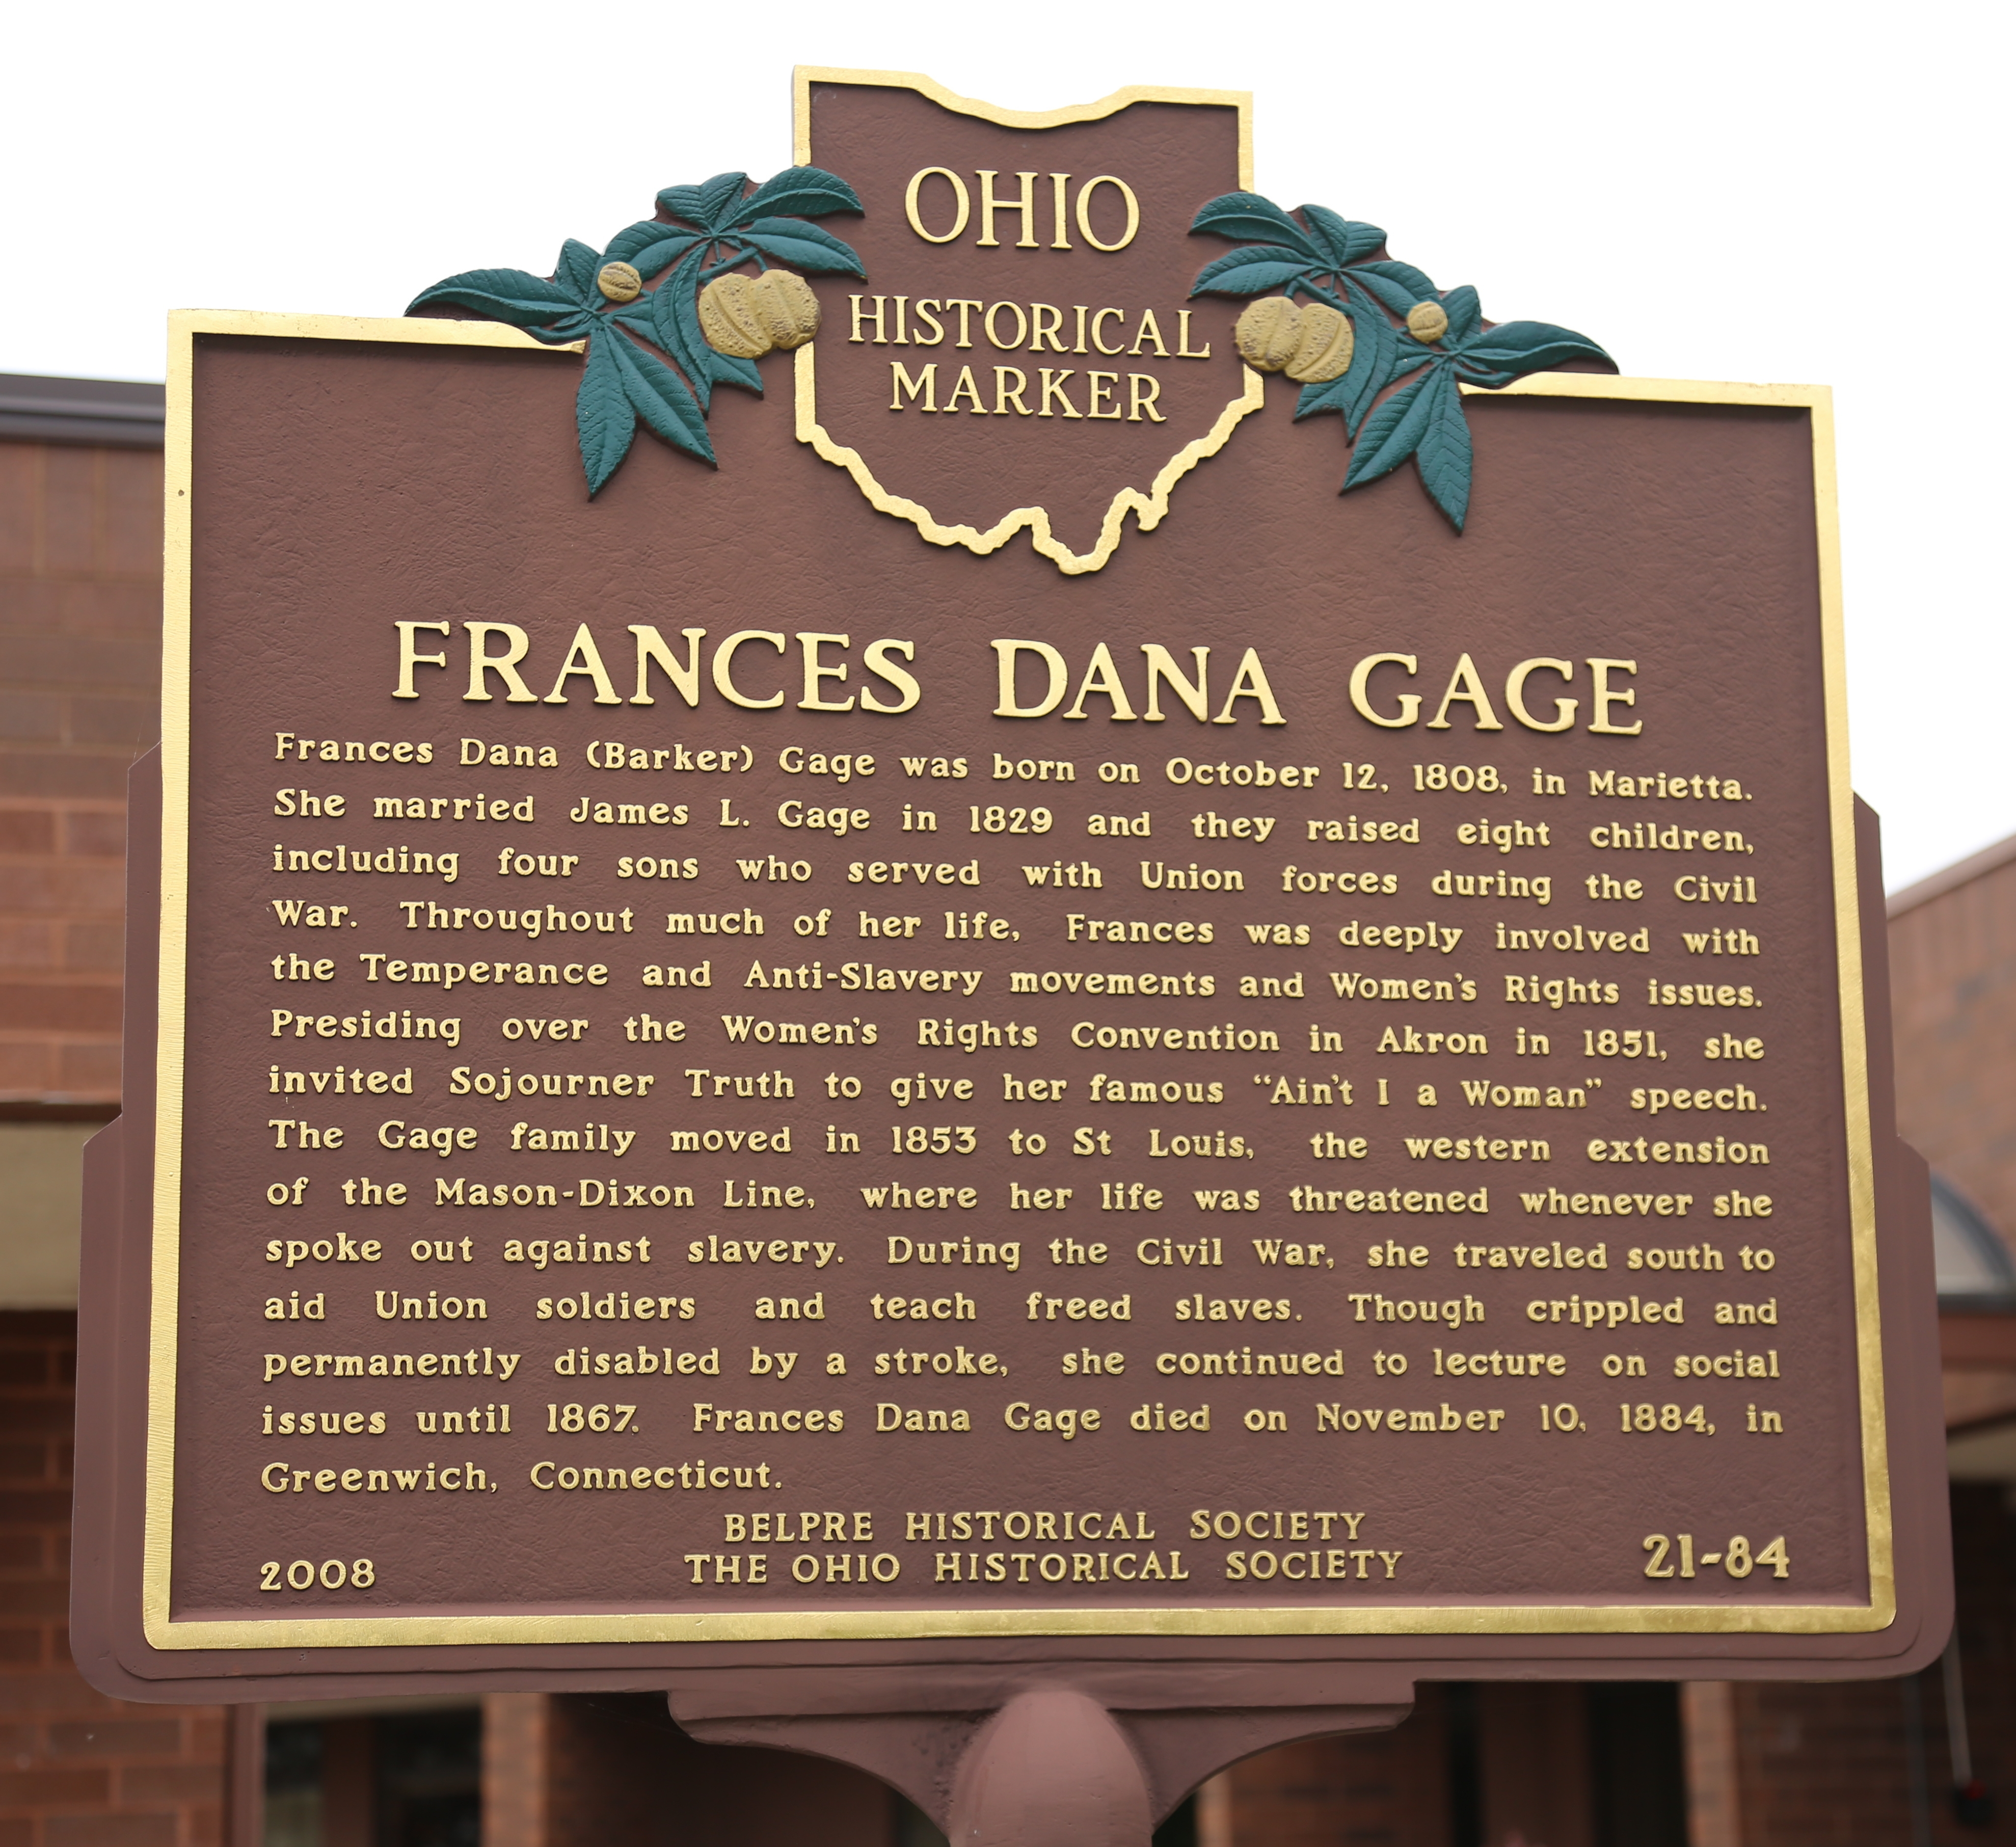 Frances Dana Gage Face of Marker